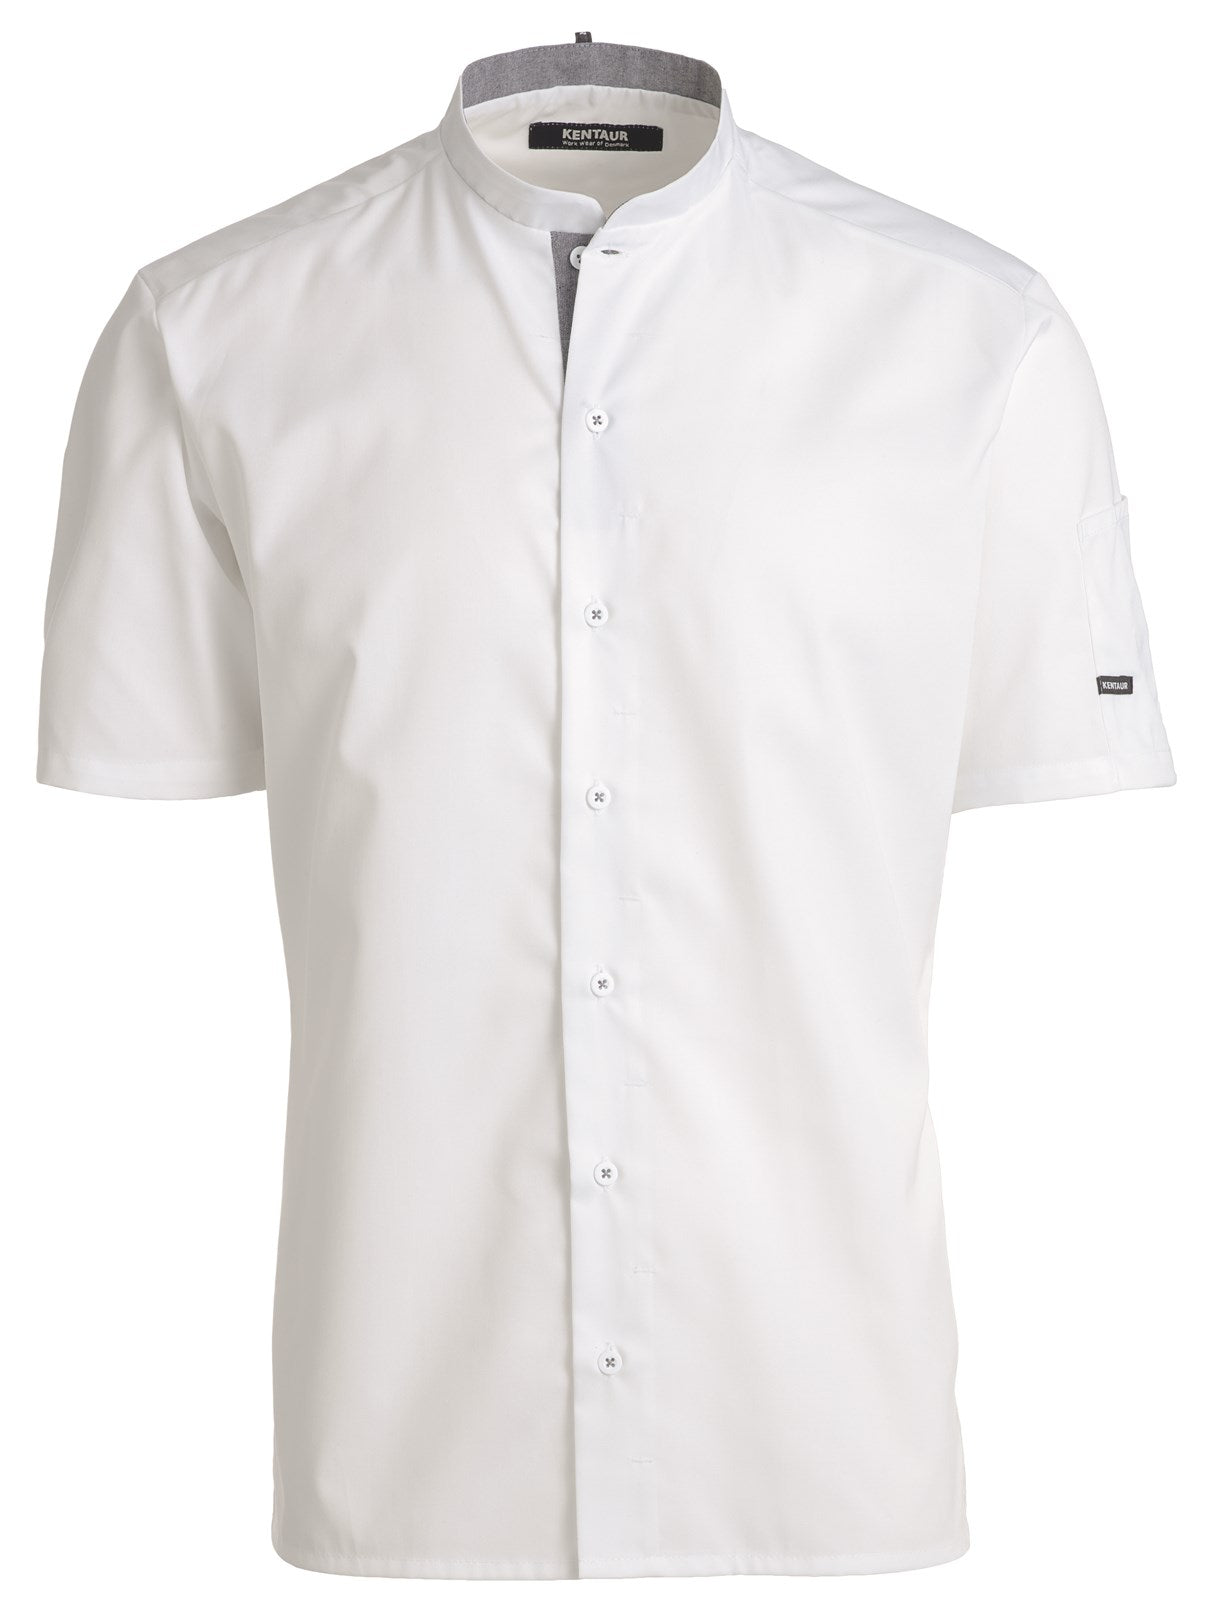 Kentaur Chef Service Shirt Short Sleeve